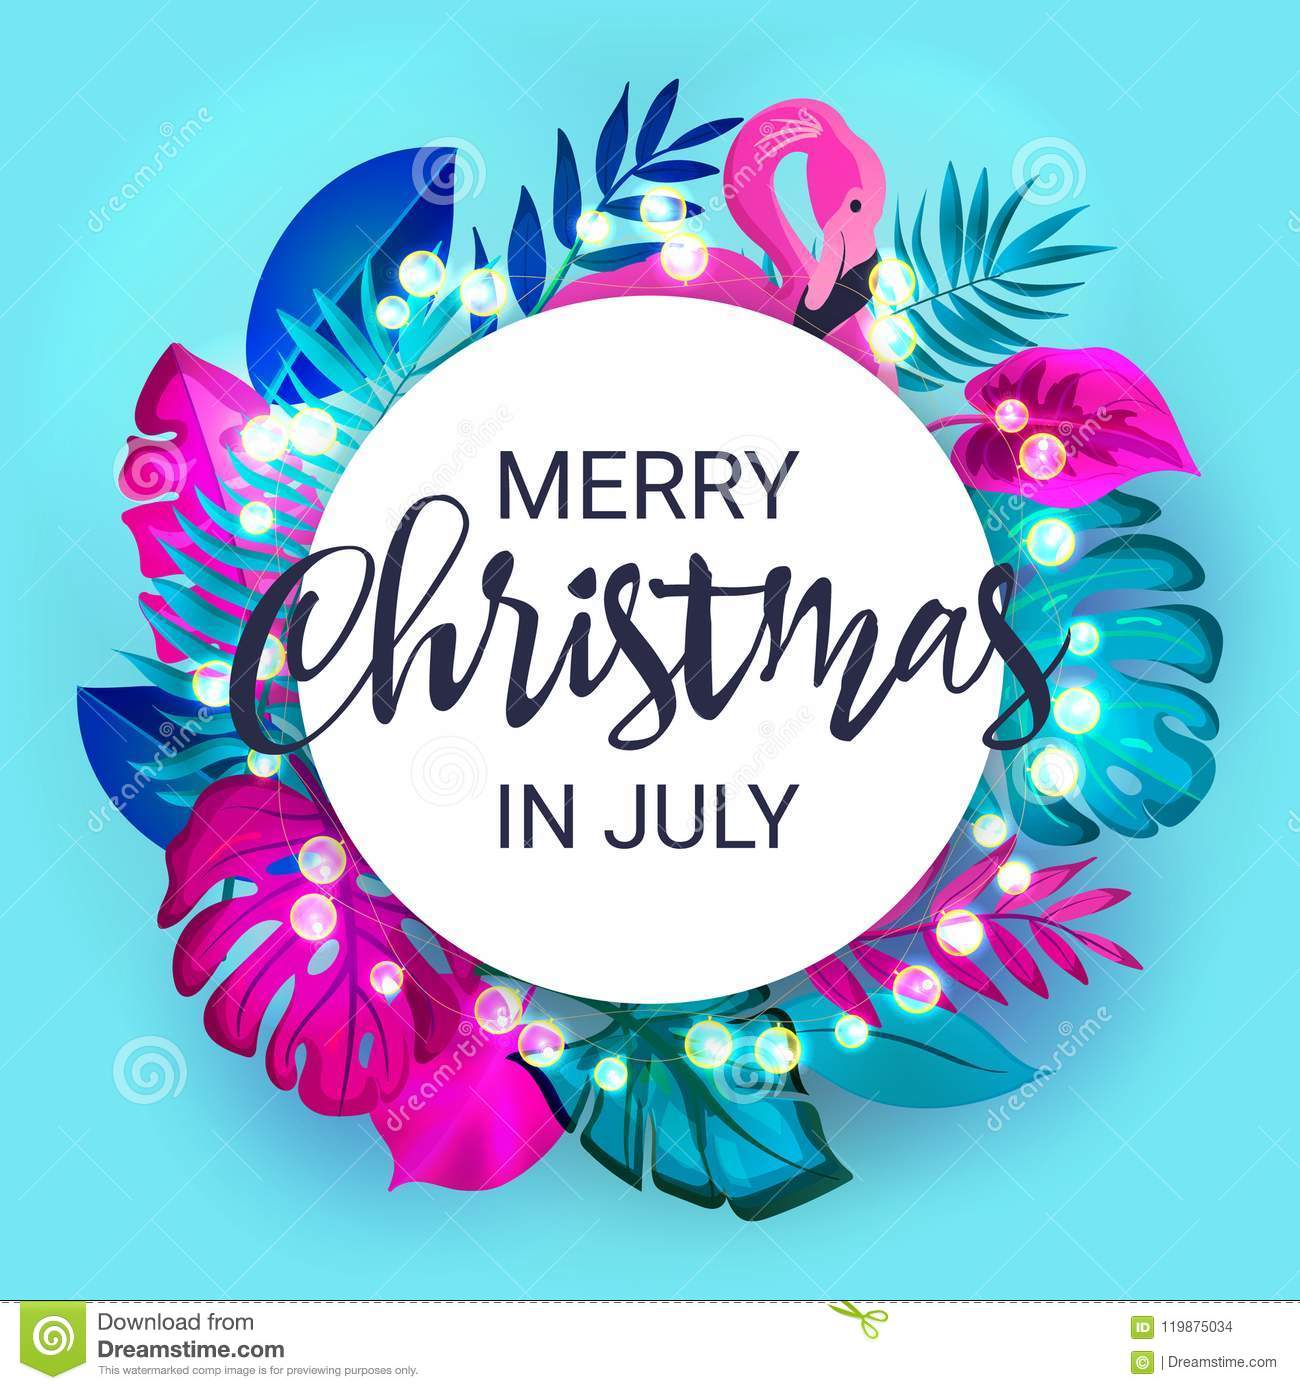 christmas in july sale marketing template eps 10 vector - Christmas In July Australia